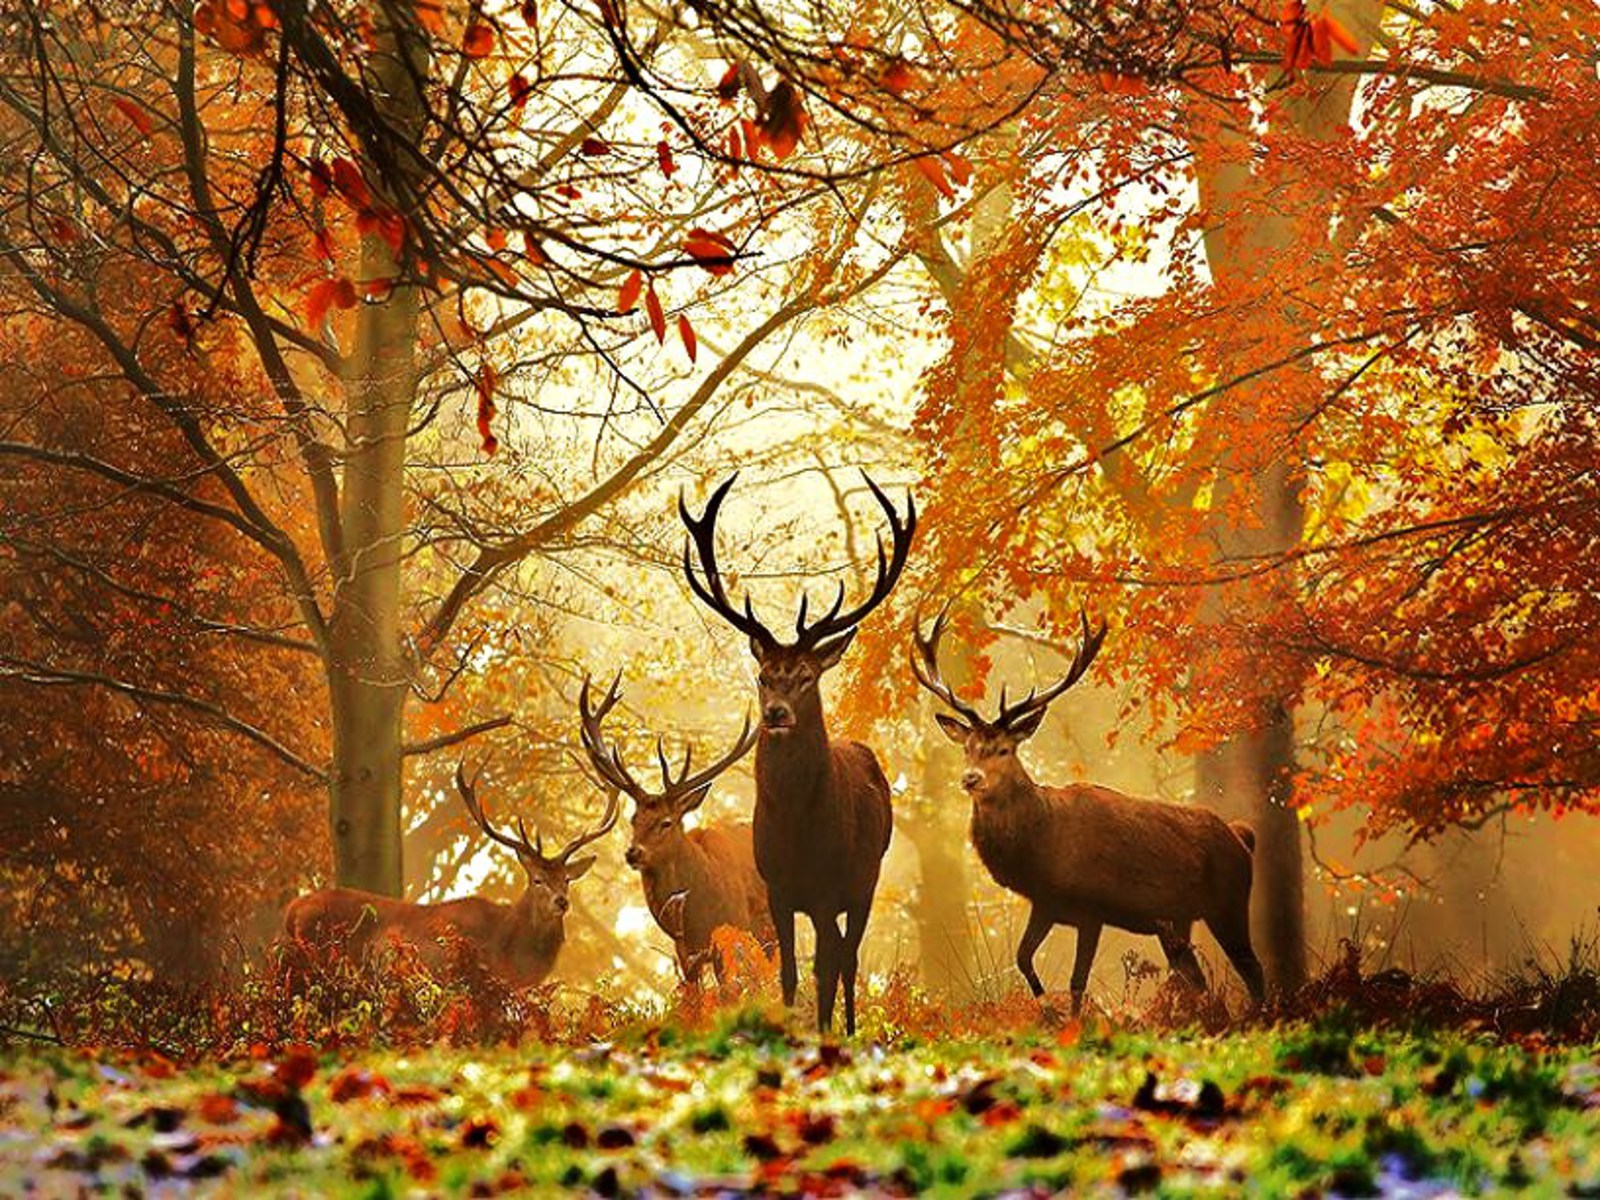 768 X 1024 Wallpaper Deer Hunting 1600x1200